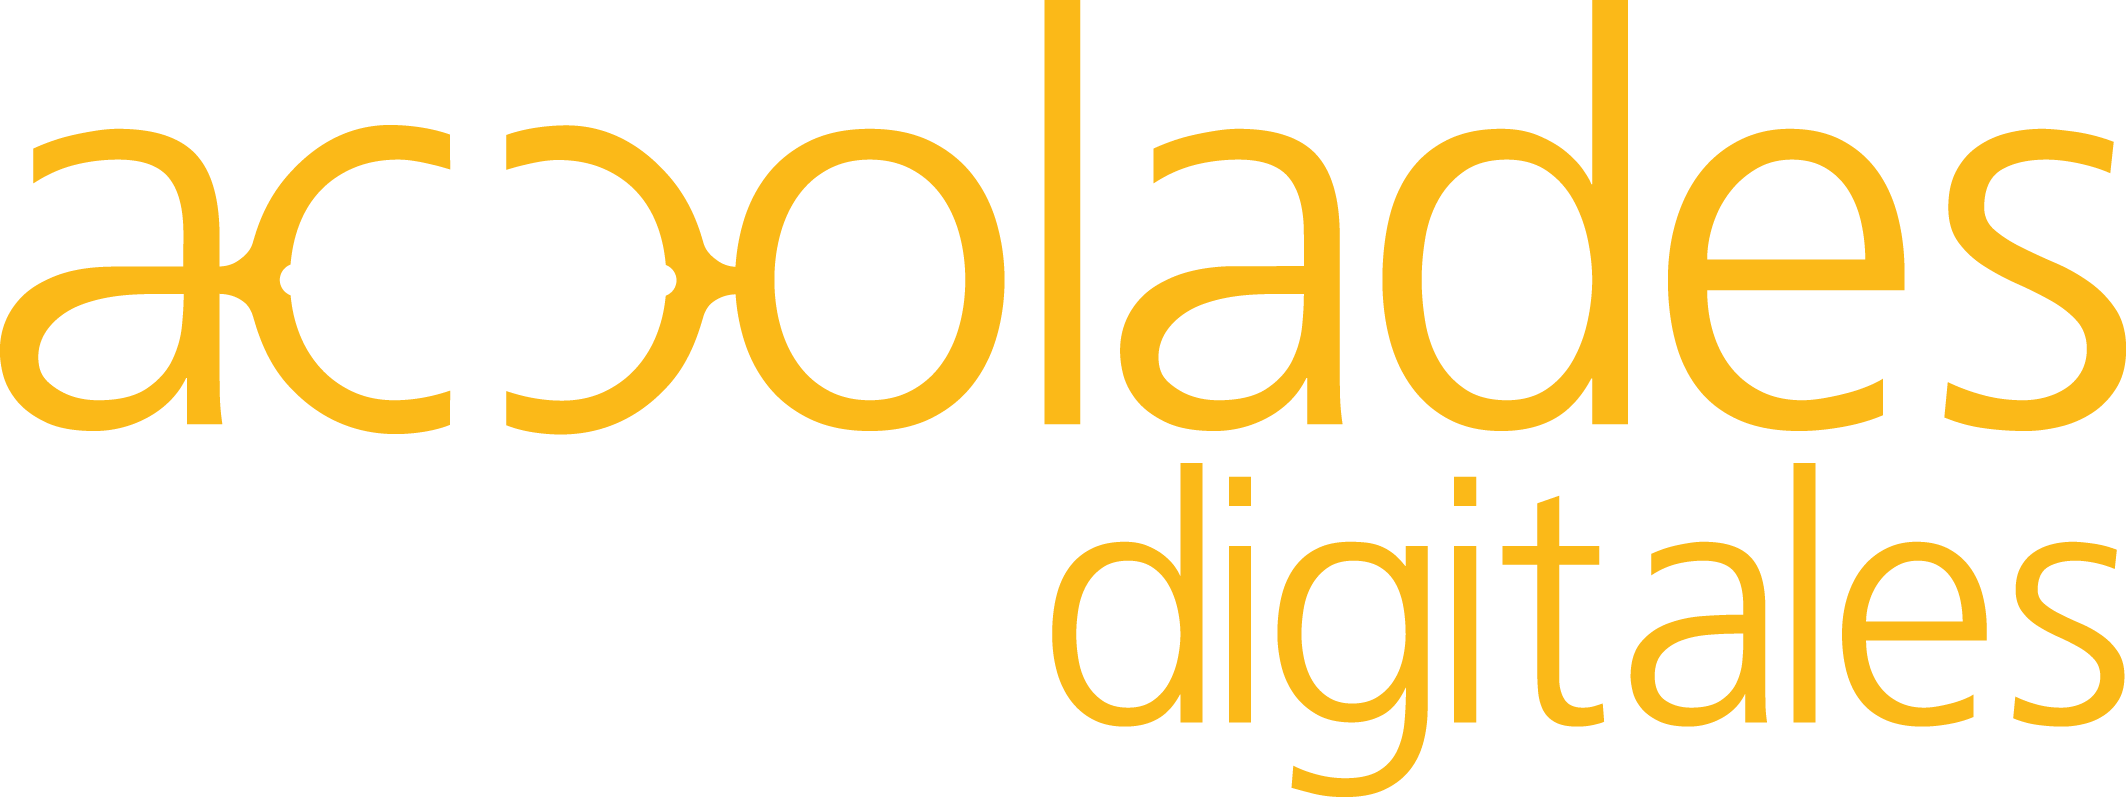 Accolades digitales